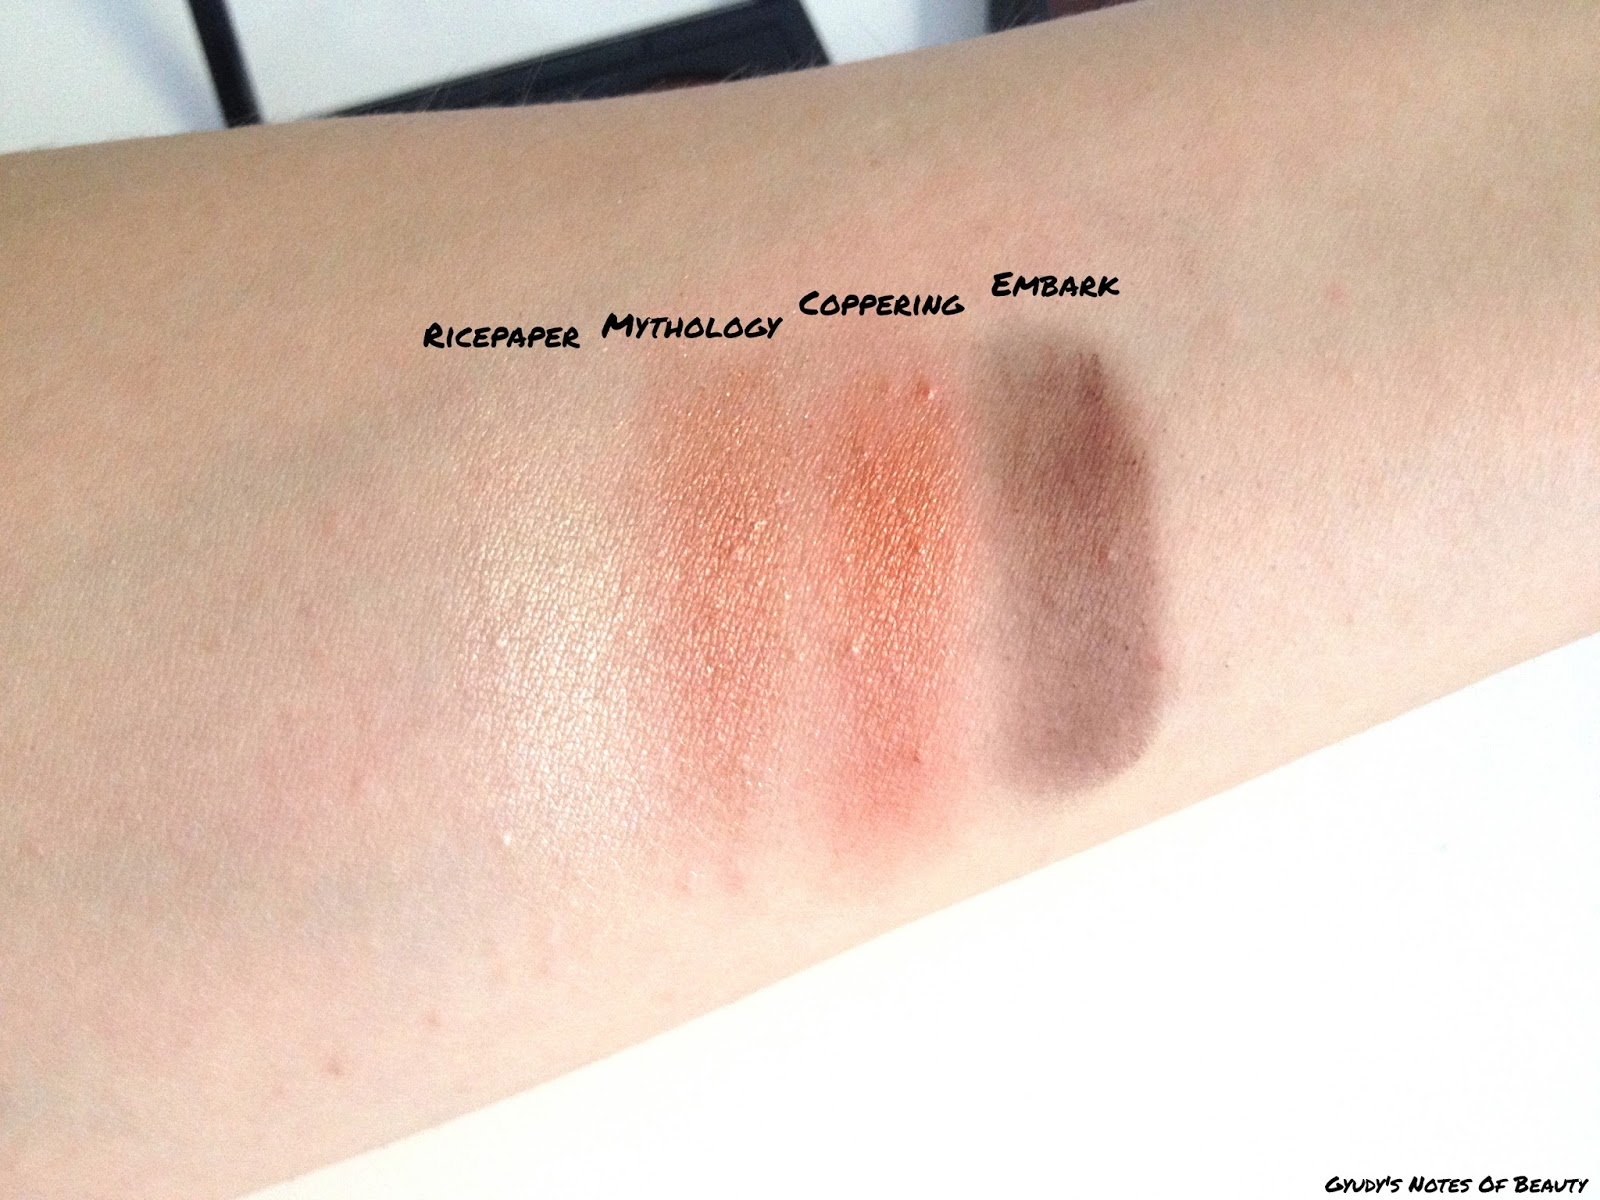 MAC Ricepaper Mythology Coppering Embark Swatches